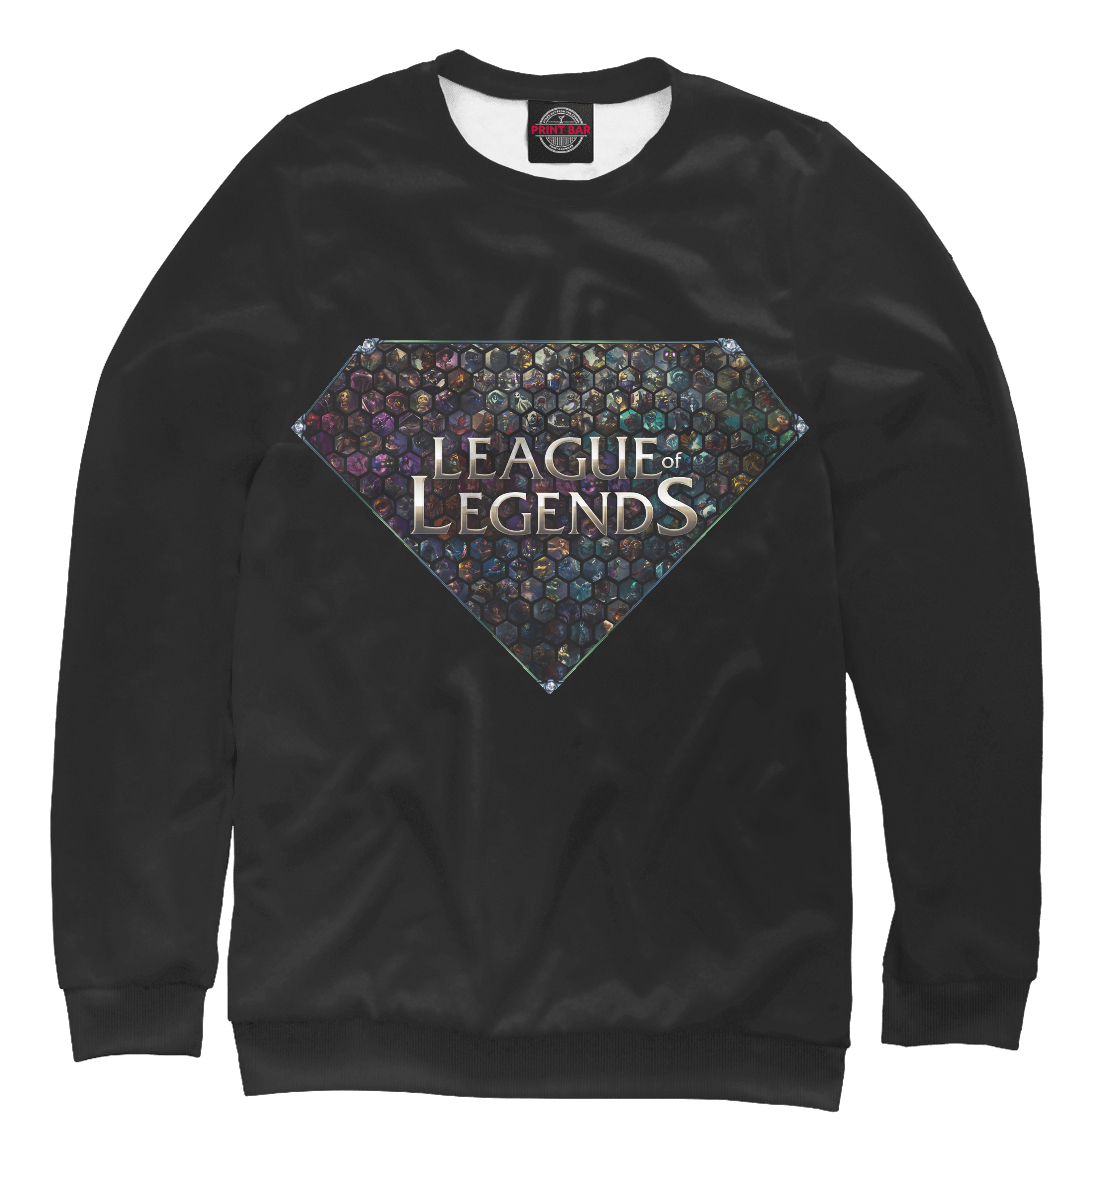 Купить League of Legends, Printbar, Свитшоты, LOL-248143-swi-1